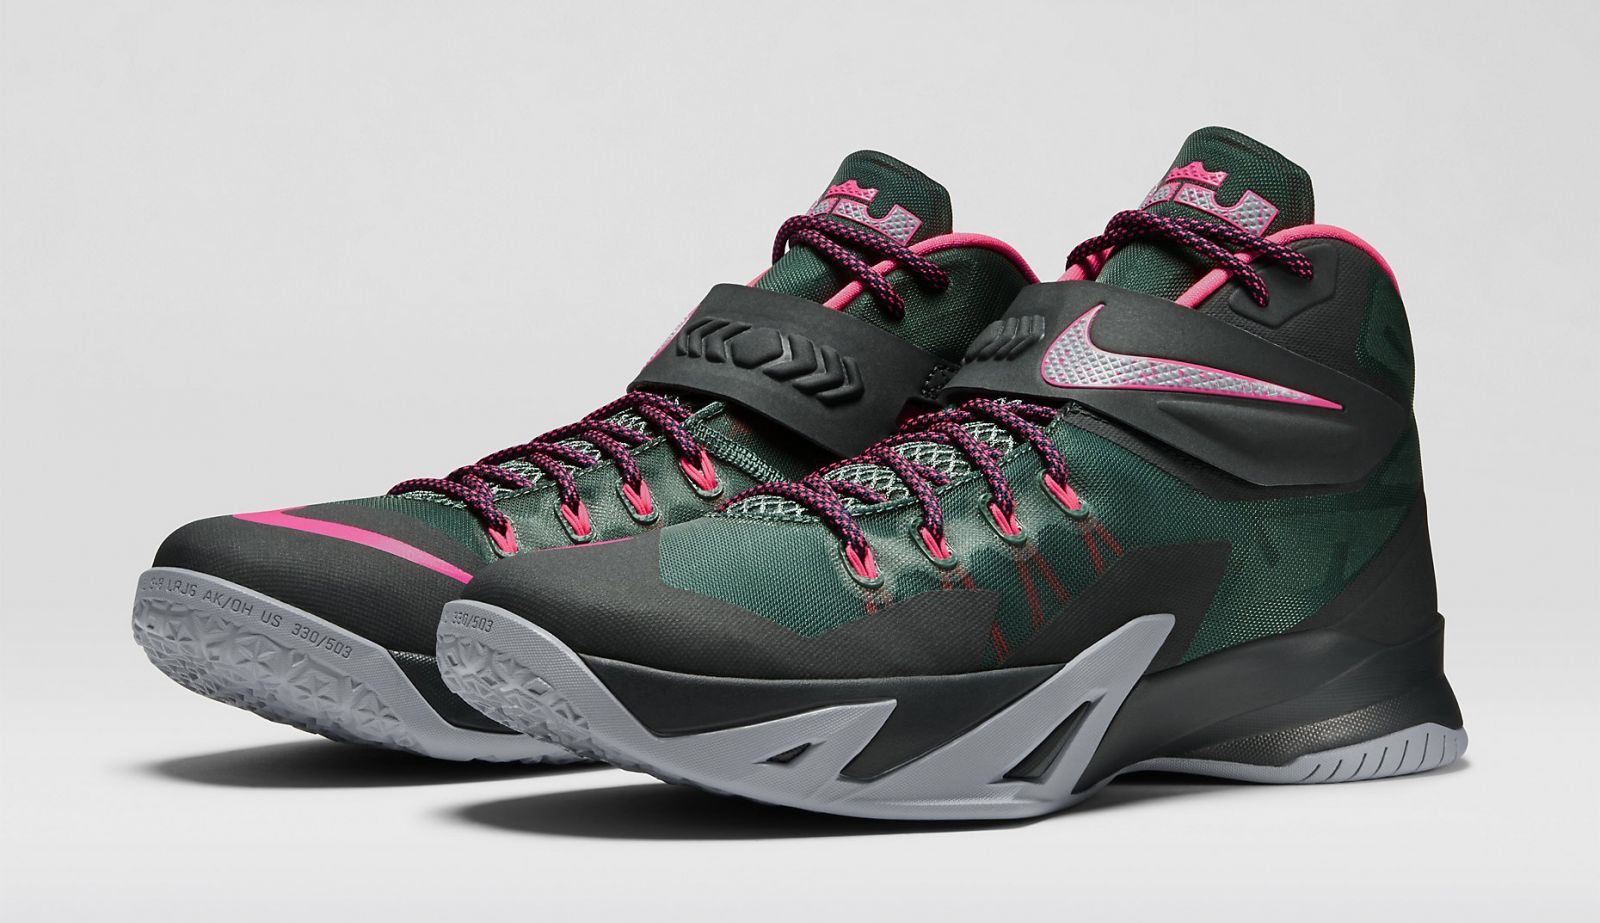 new product da5e4 20ba0 The Nike Zoom Soldier 8 in Black and Hyper Punch